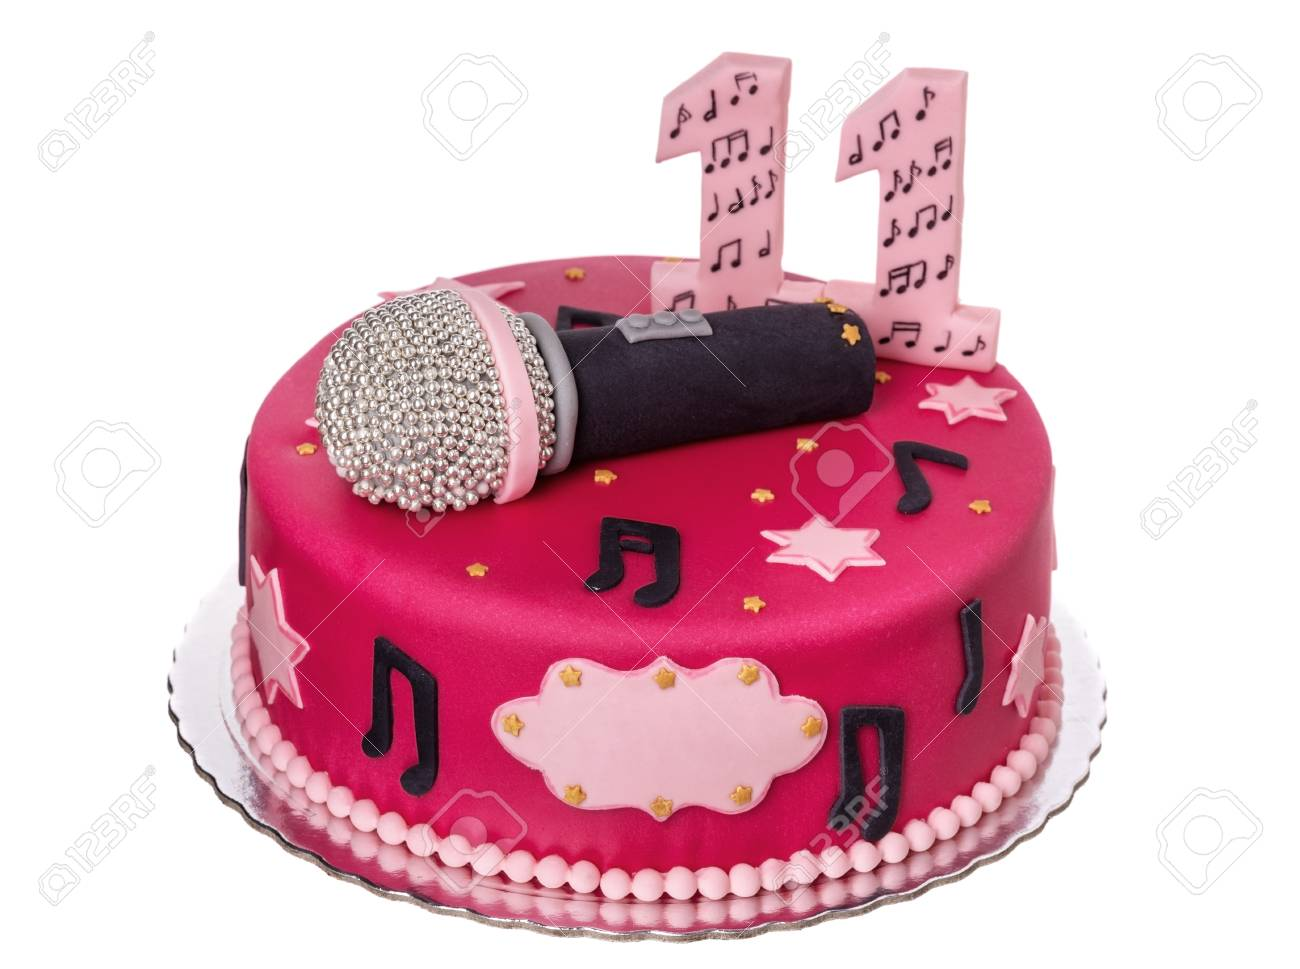 Surprising Festive Cake Microphone For The Birthday Girl Stock Photo Funny Birthday Cards Online Overcheapnameinfo